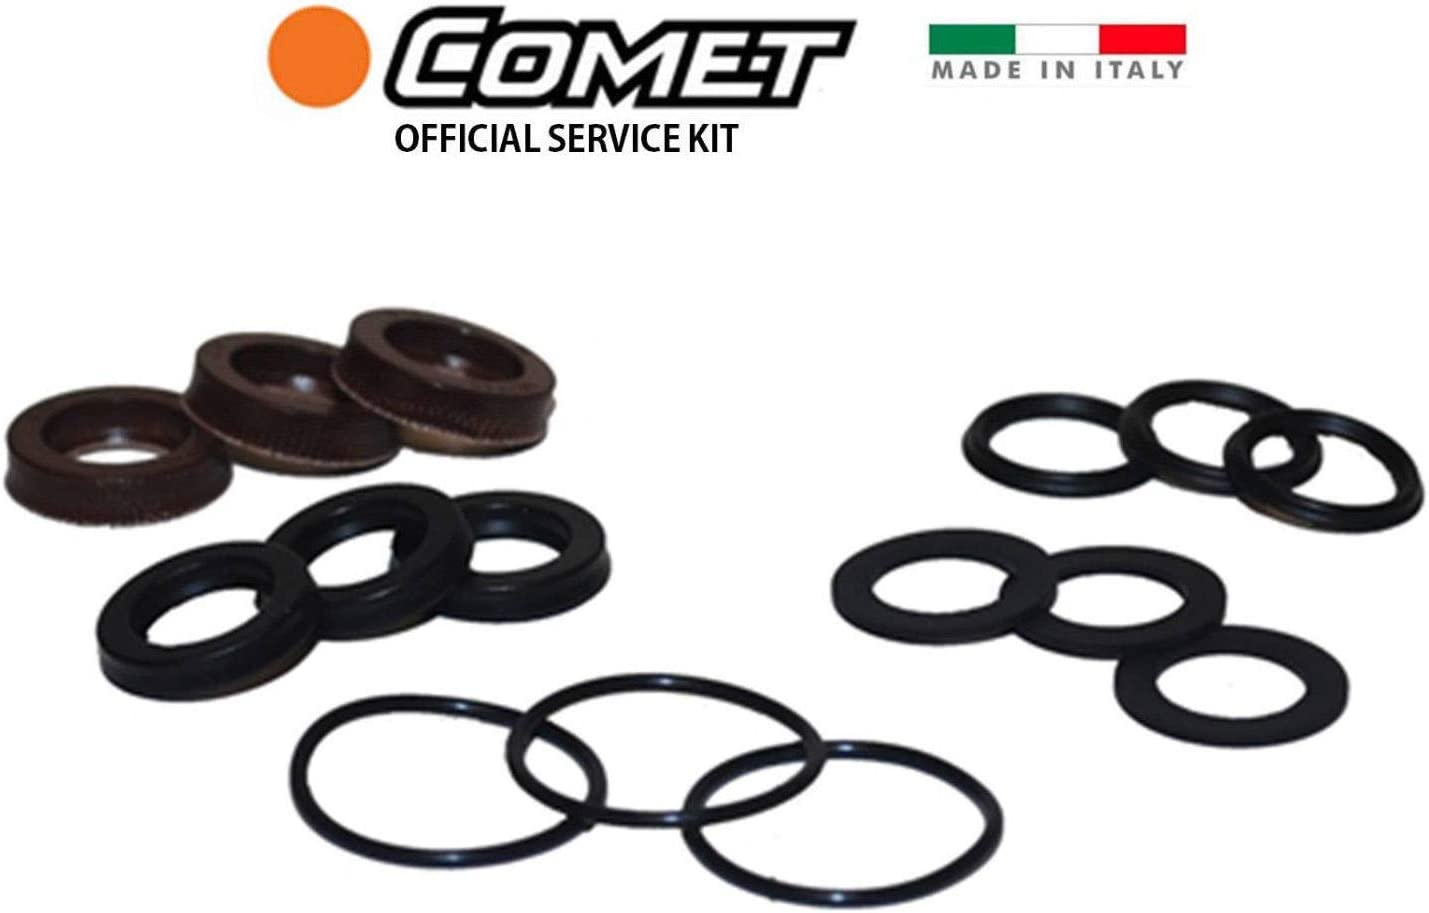 COMET AX SERIES WATER SEAL KIT UP TO 2400 PSI  # 5019.0077.00